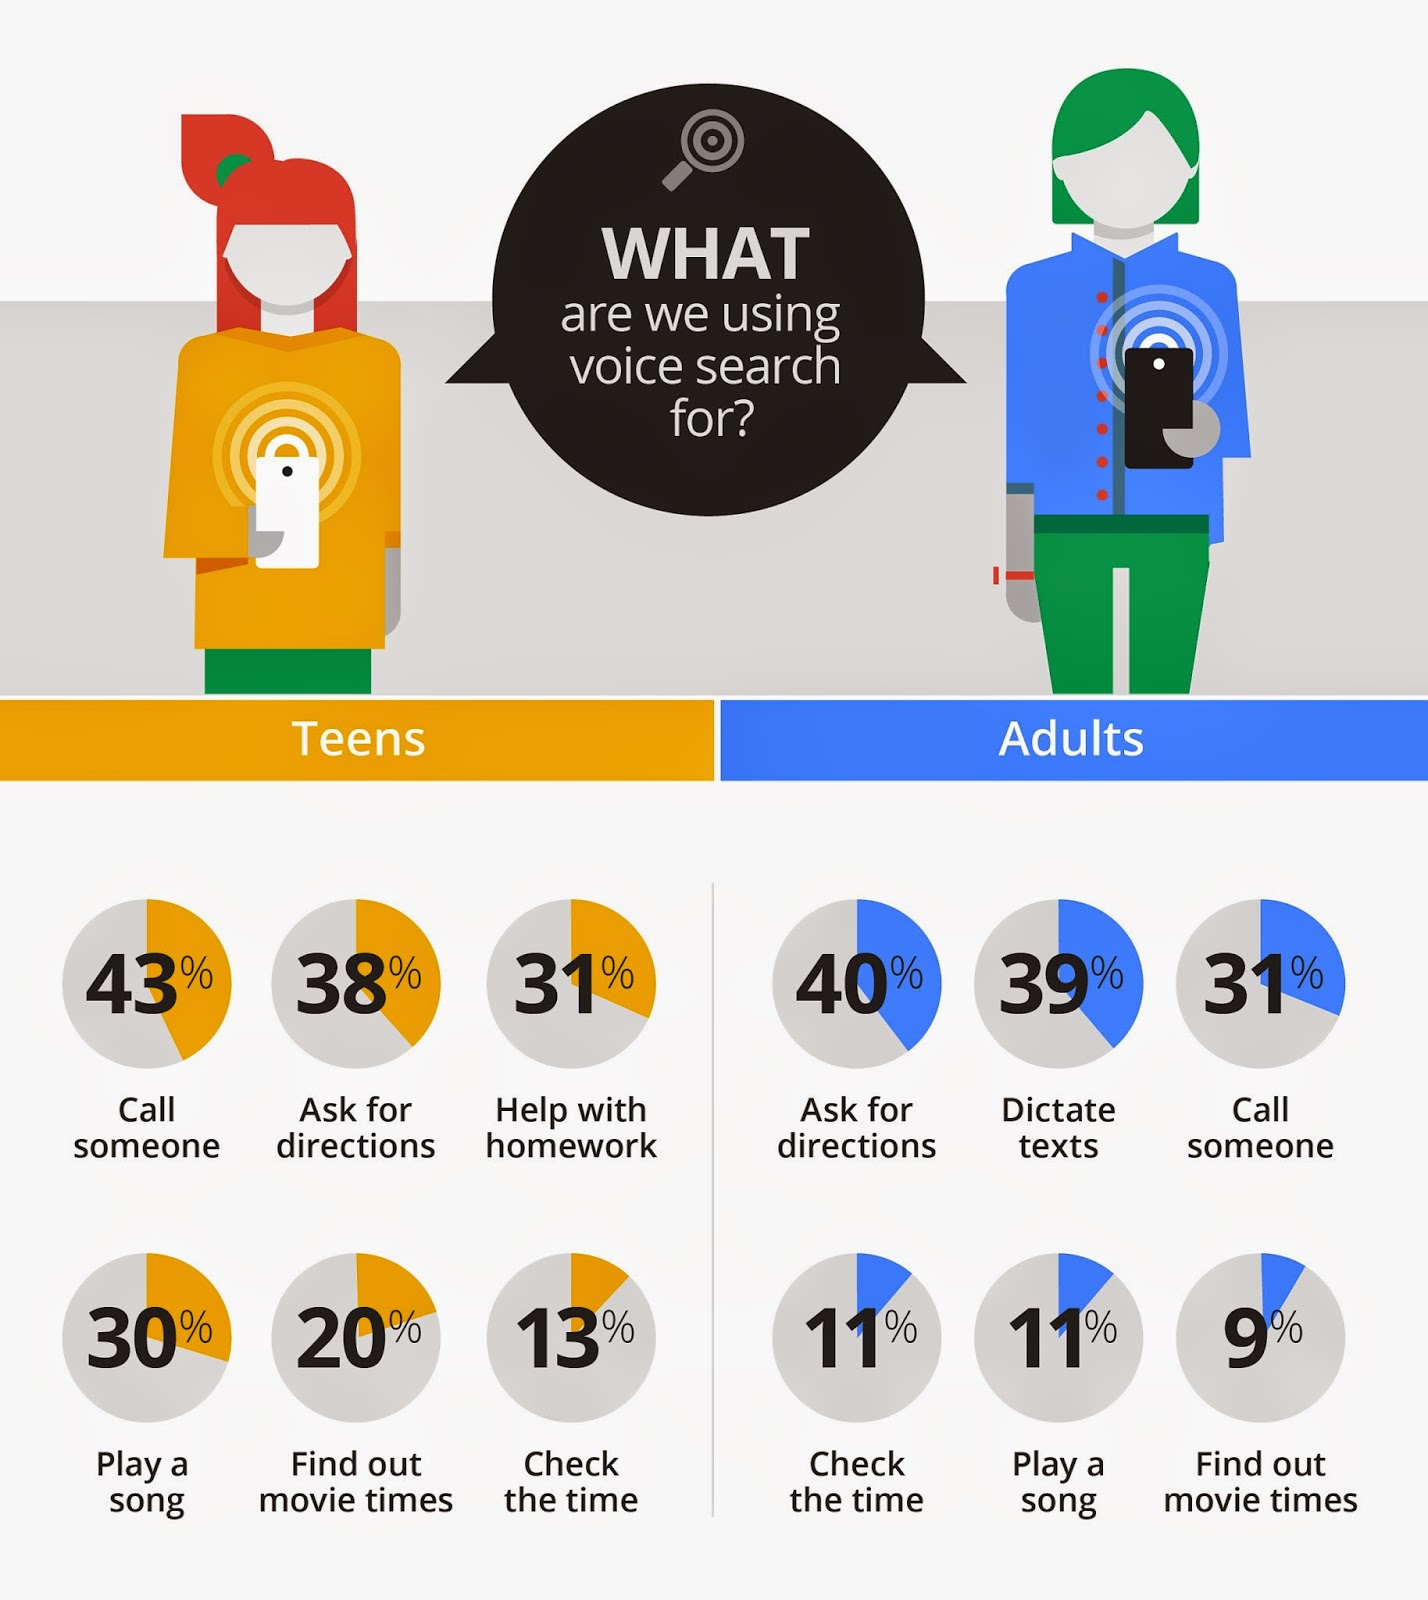 What do different demographics use voice search for?